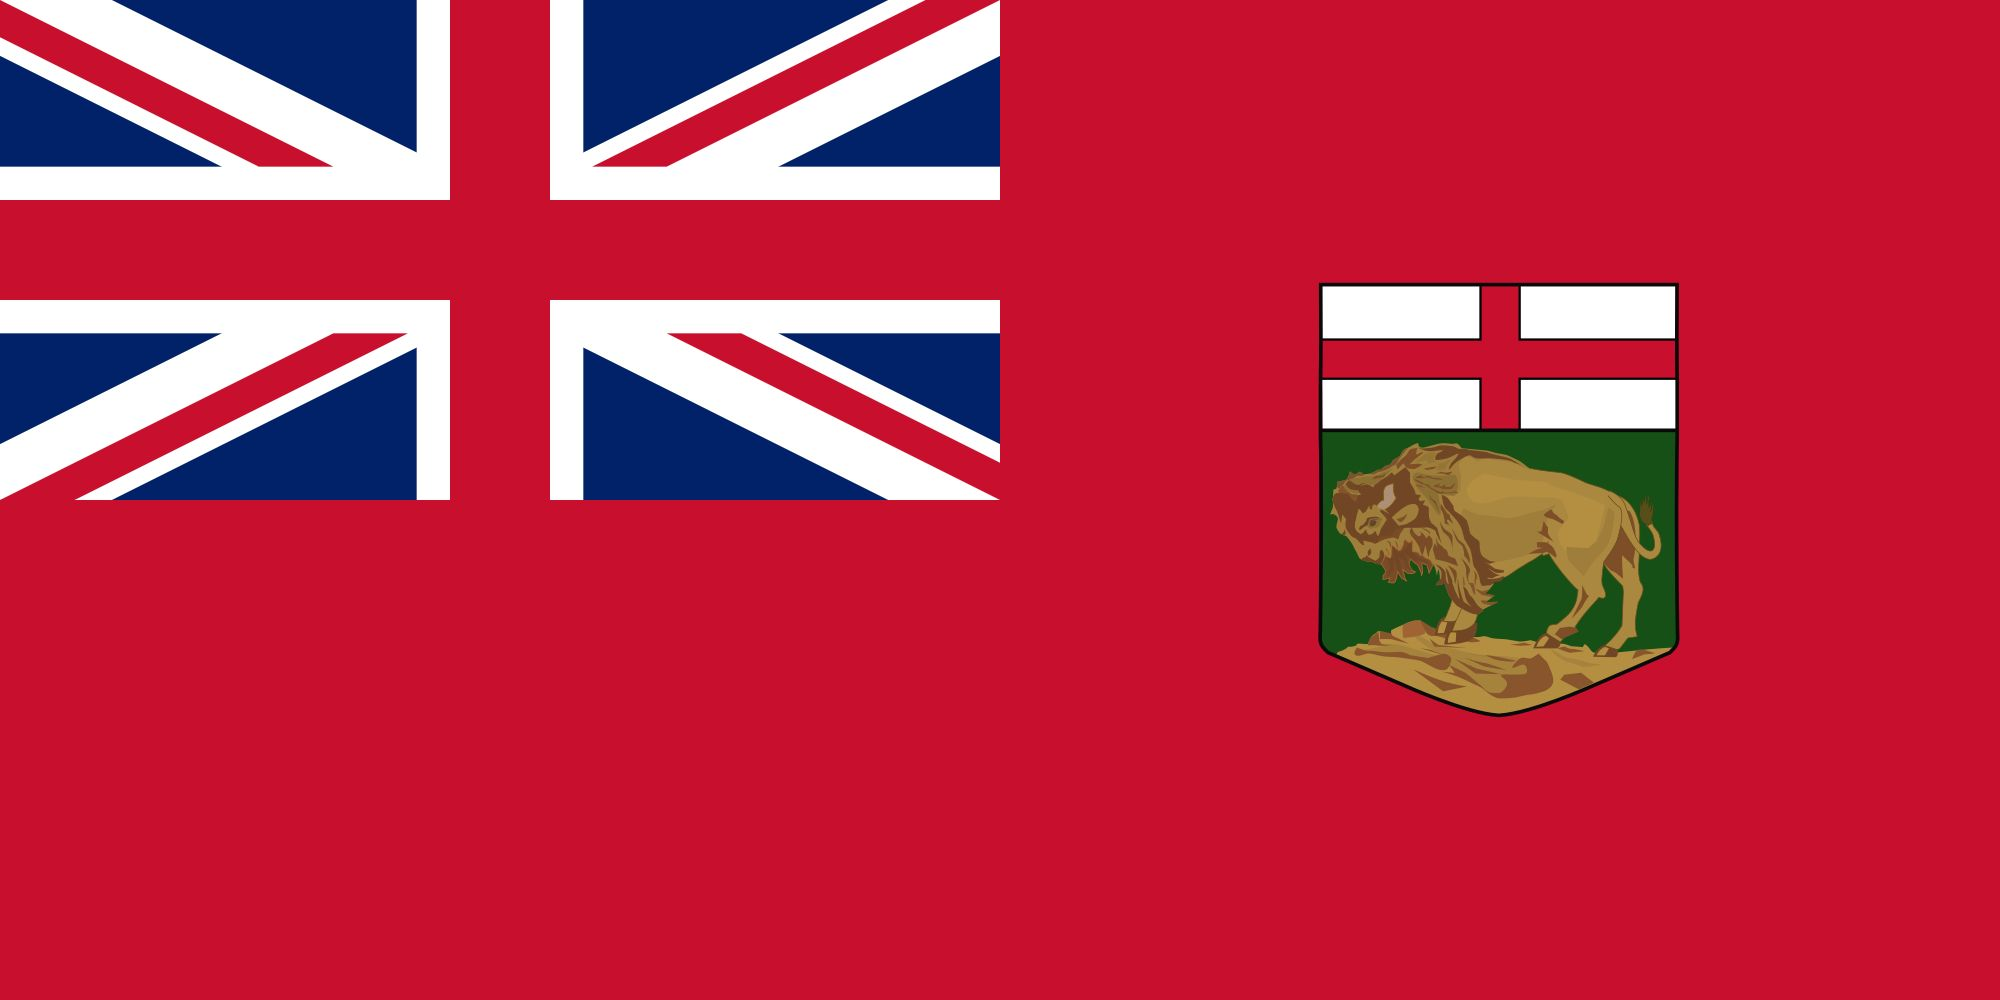 Pin By Wayne Branam On Flags In 2020 Canadian Provinces Flag Newfoundland And Labrador